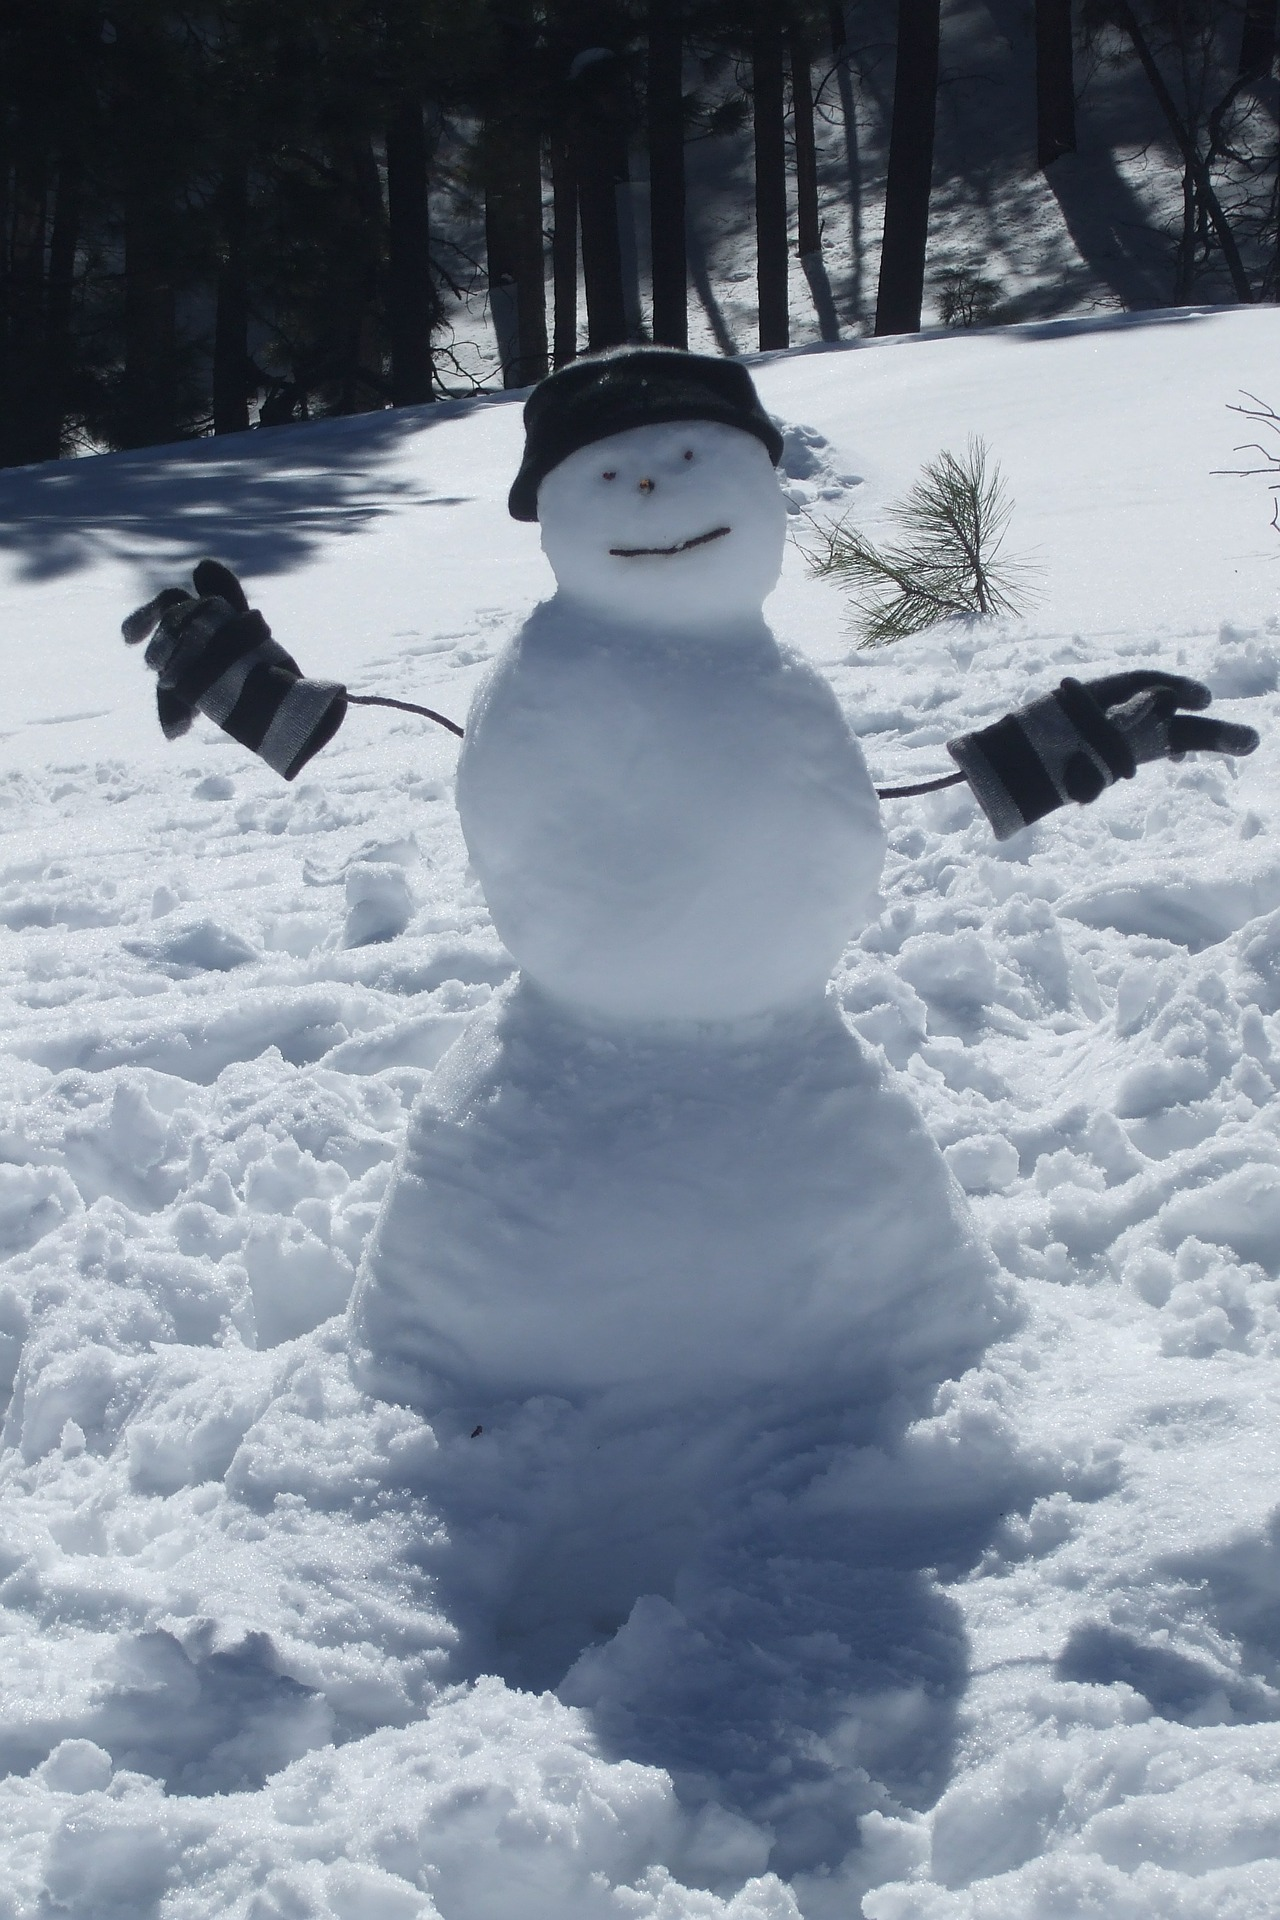 Snowman with gloves and hat